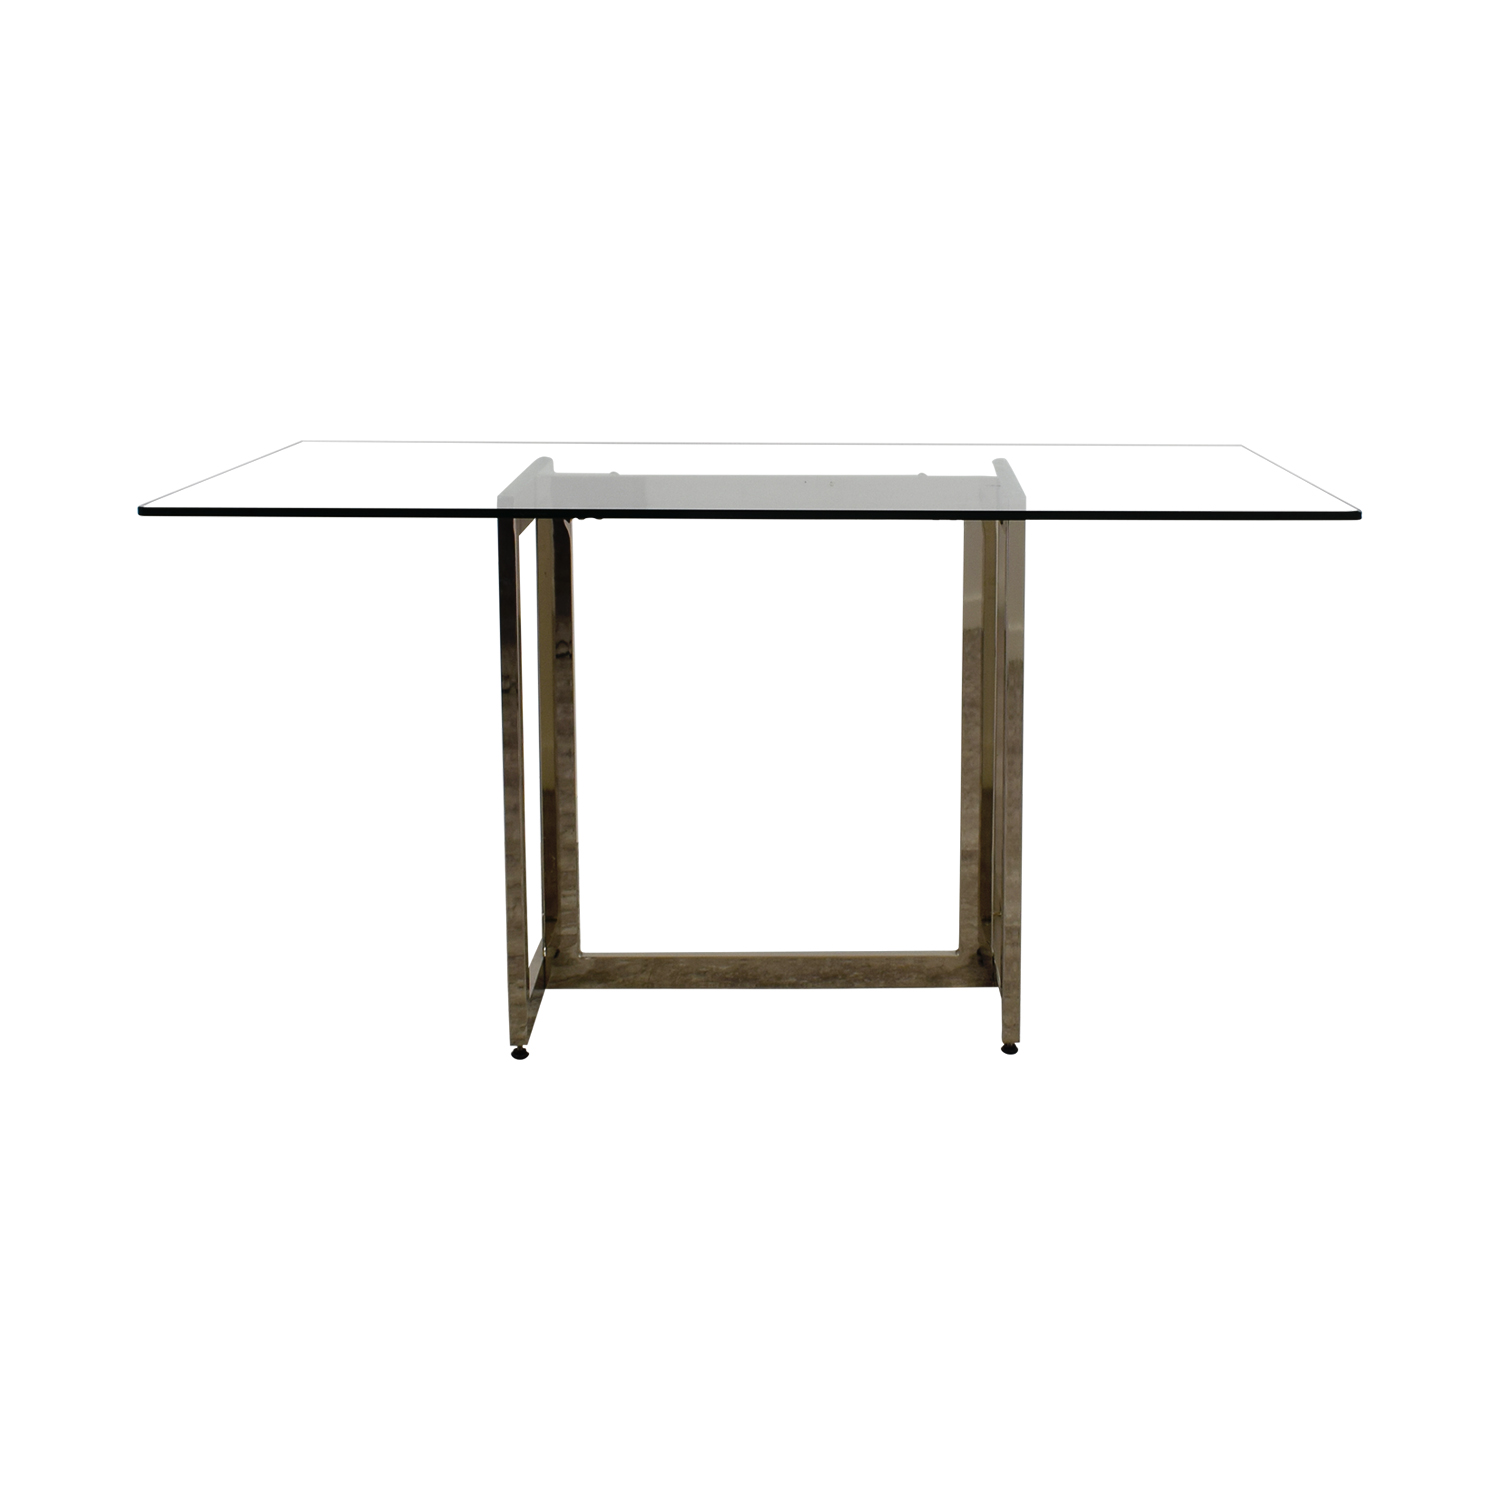 buy West Elm West Elm Rectangular Glass and Chrome Dining Table online